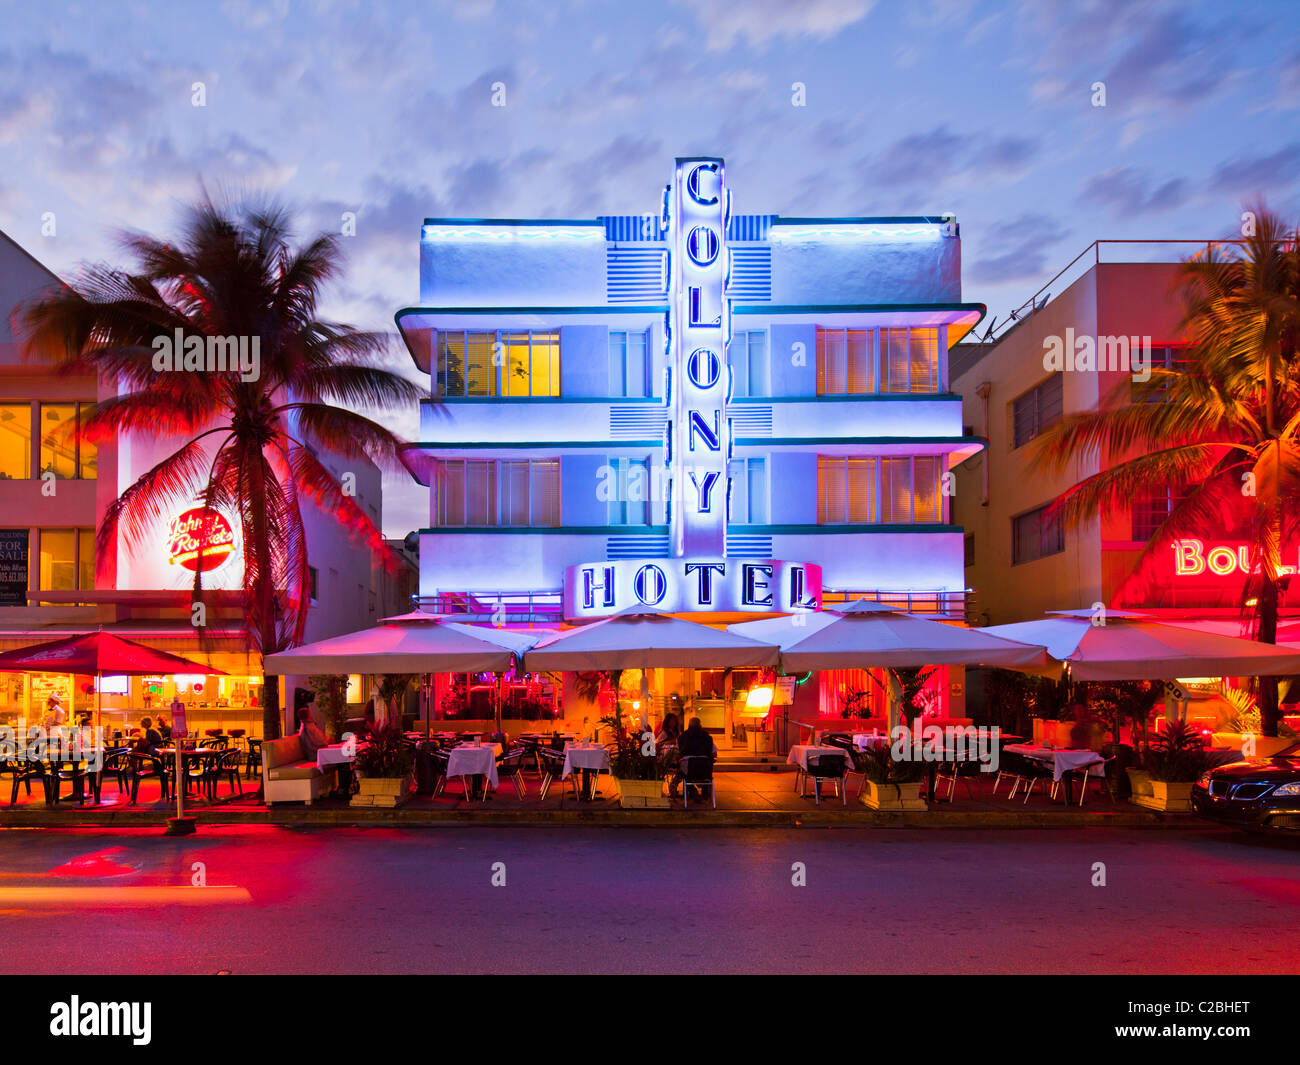 Colony Hotel at dusk, South Beach, Miami - Stock Image